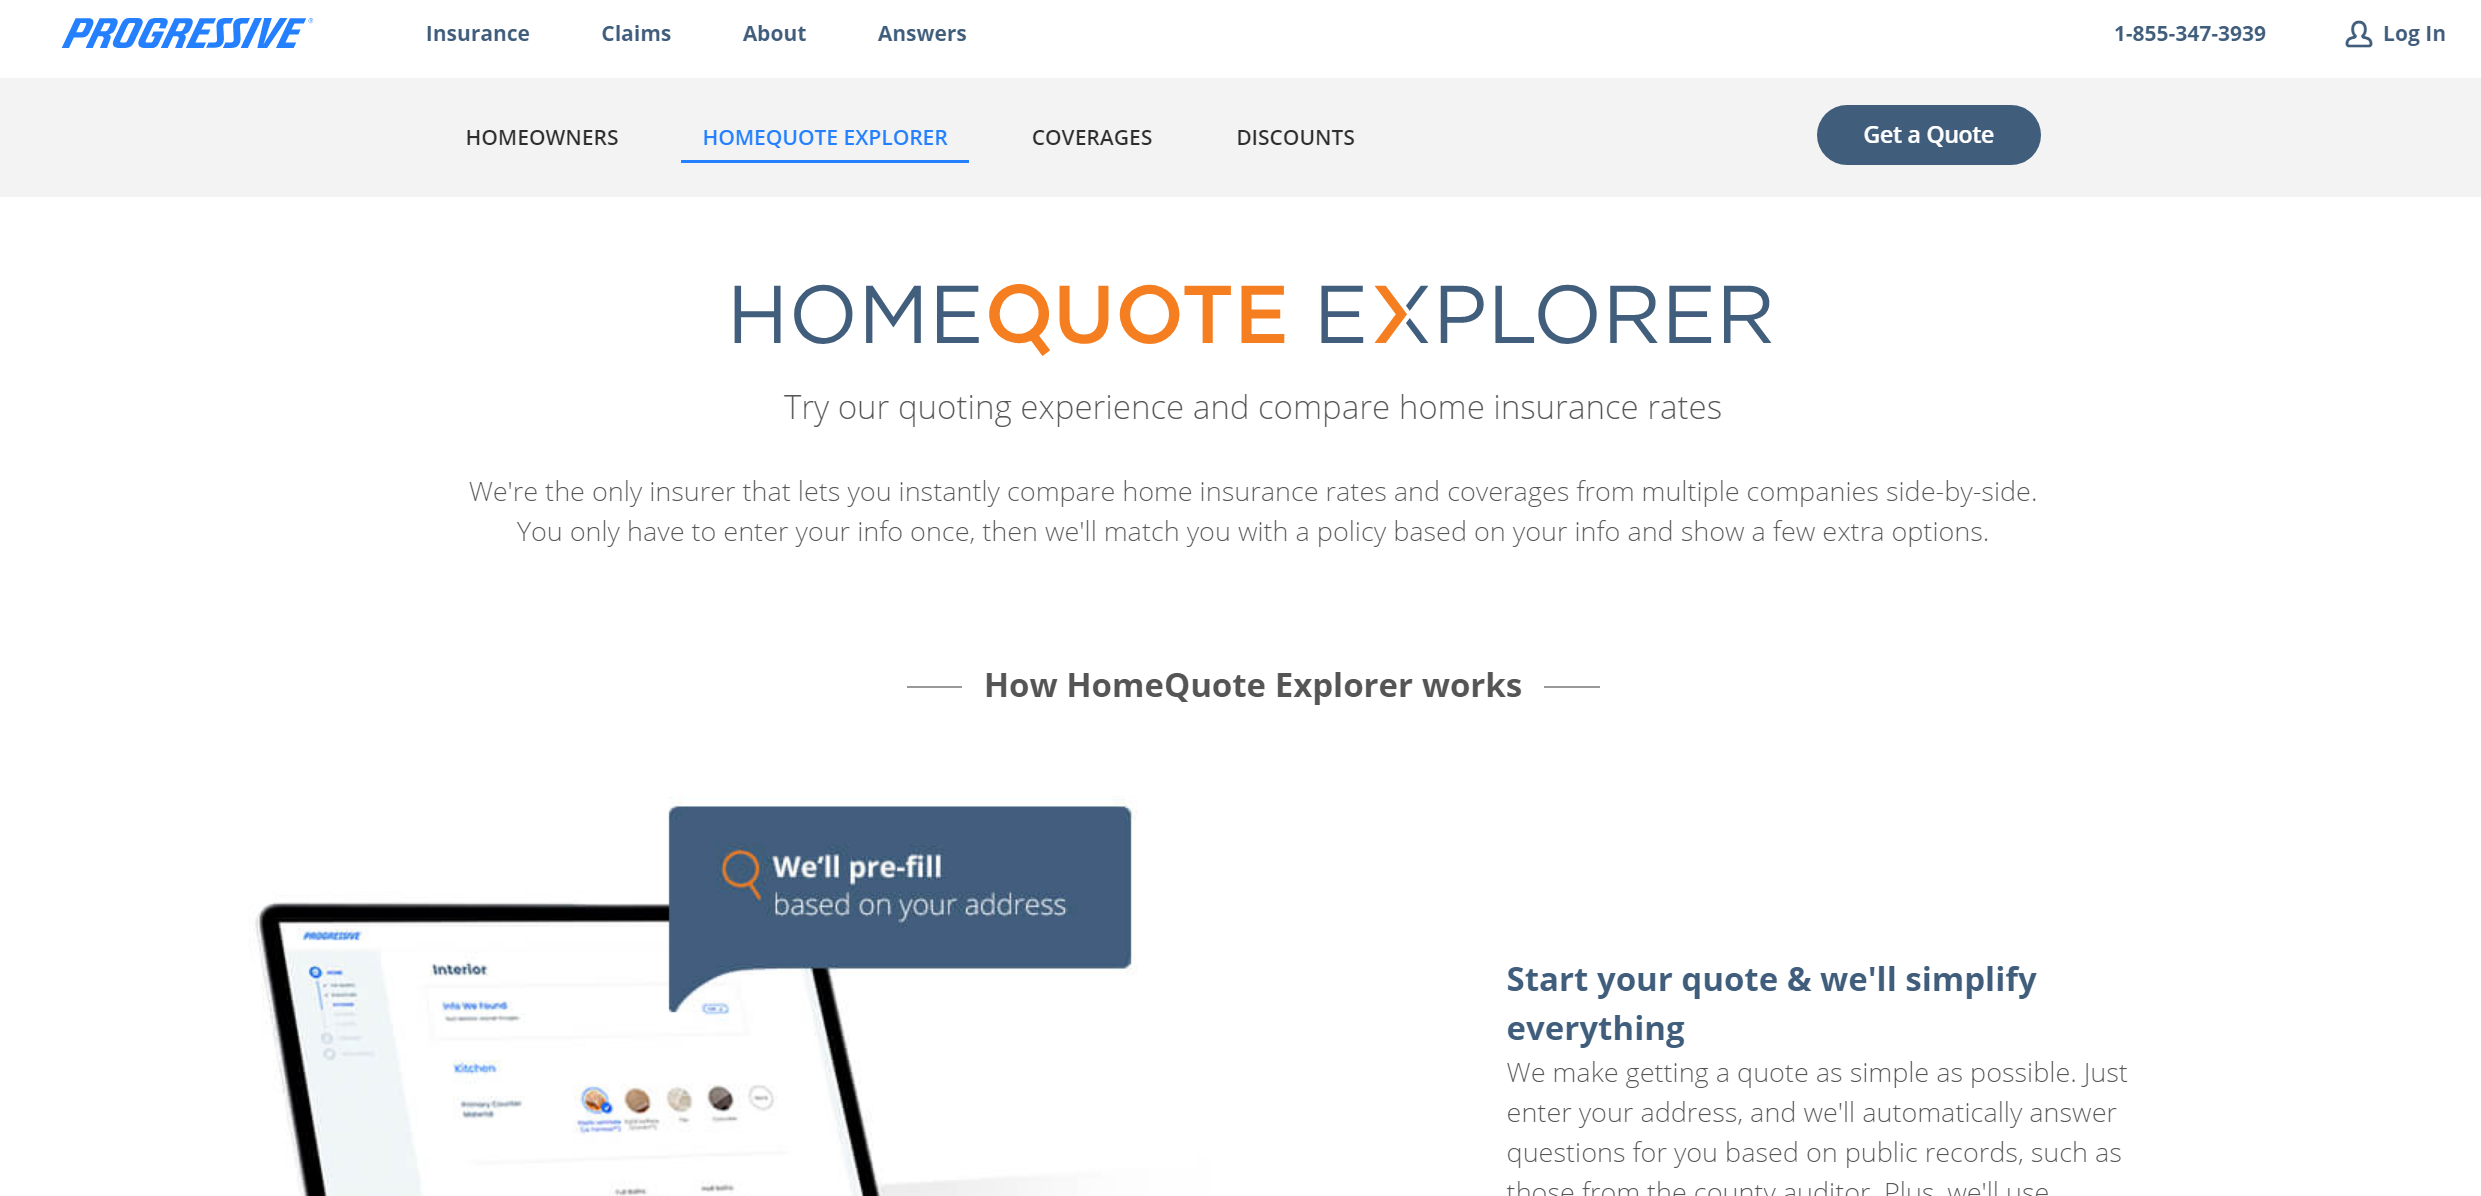 Progressive Have This Interesting Quoting Experience For Home That Compares Rates From Other Companies Side By Si Home Insurance Quotes Insurance Quotes Quotes